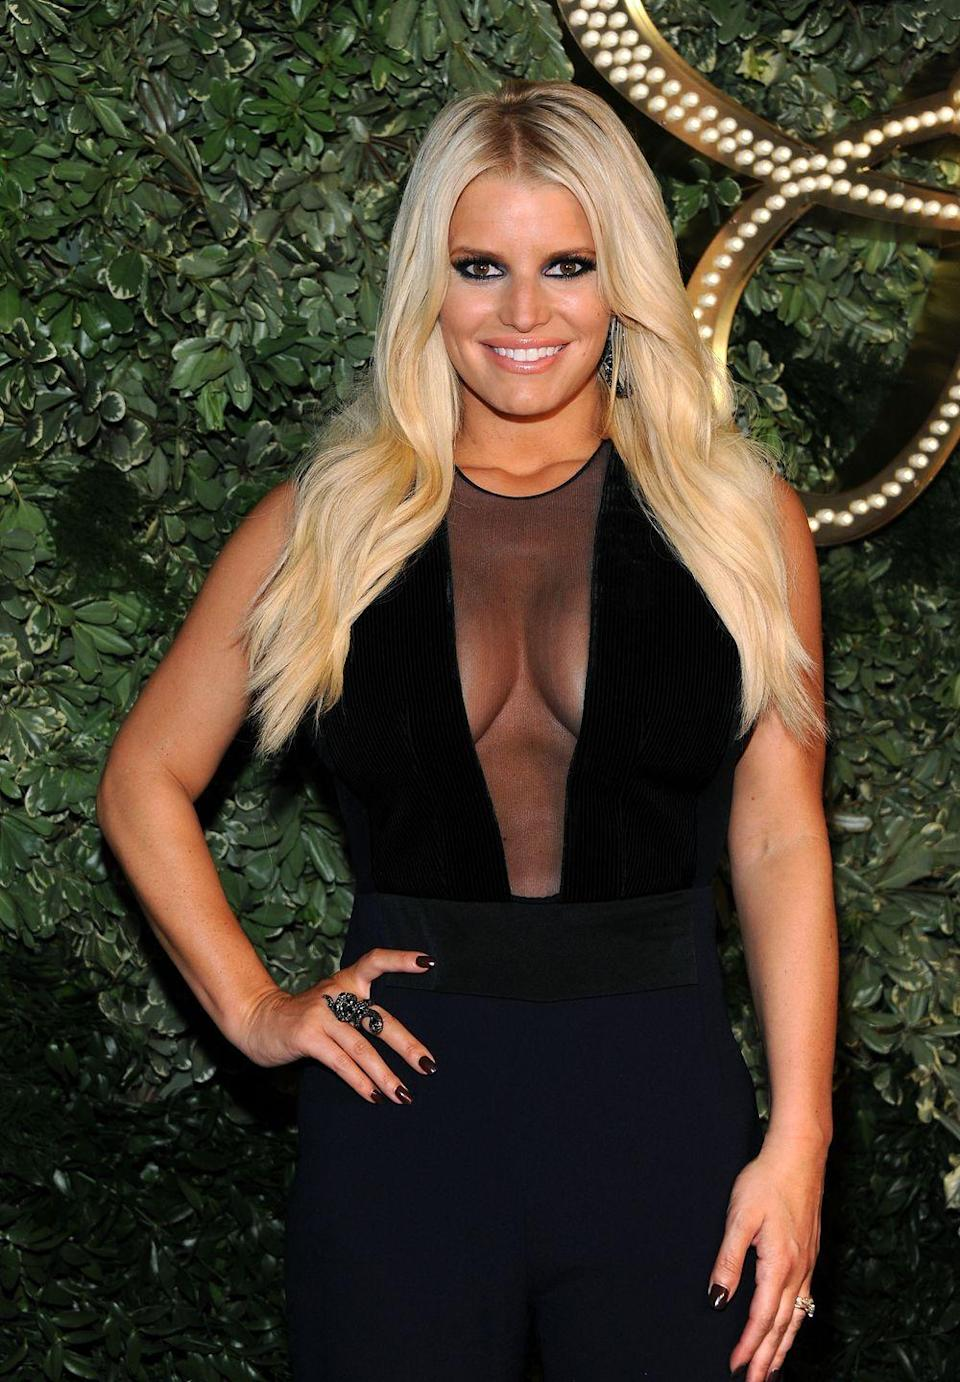 """<p>Jessica Simpson <a href=""""https://www.glamourmagazine.co.uk/article/lips-dont-lie"""" rel=""""nofollow noopener"""" target=""""_blank"""" data-ylk=""""slk:told Glamour in 2006"""" class=""""link rapid-noclick-resp"""">told Glamour in 2006</a> that she hated her lip injections. 'I had that Restylane stuff,' she said. 'It looked fake to me. I didn't like that. But…it went away in, like, four months. My lips are back to what they were. Thank God!'</p>"""